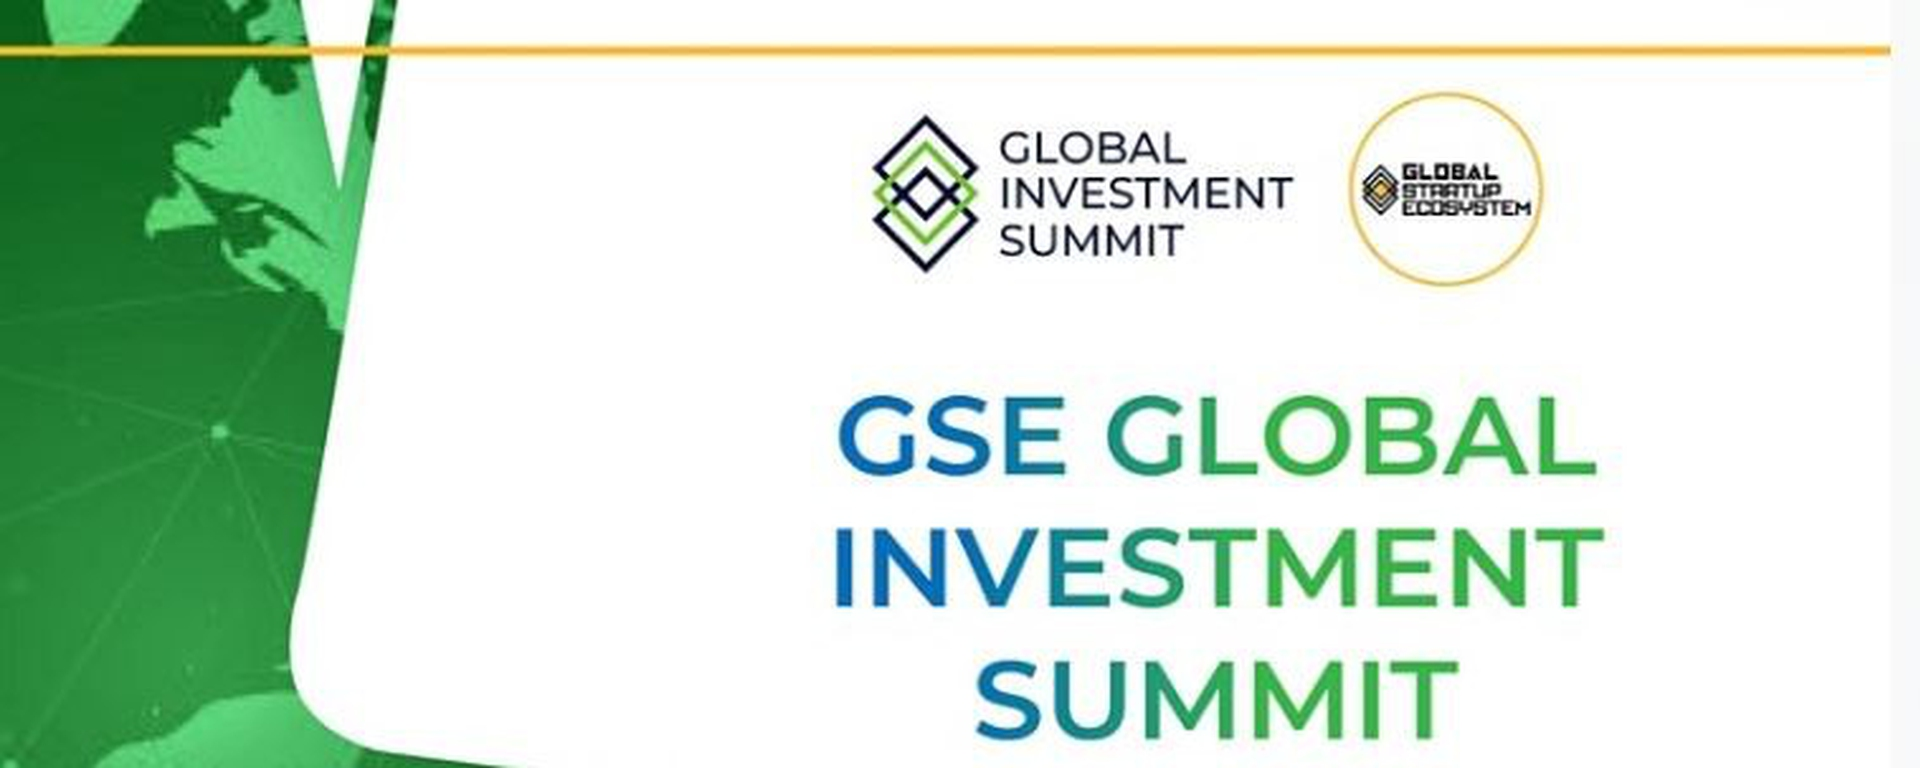 Global Startup Ecosystem - GSE Global Investment Summit Movemeback African event cover image